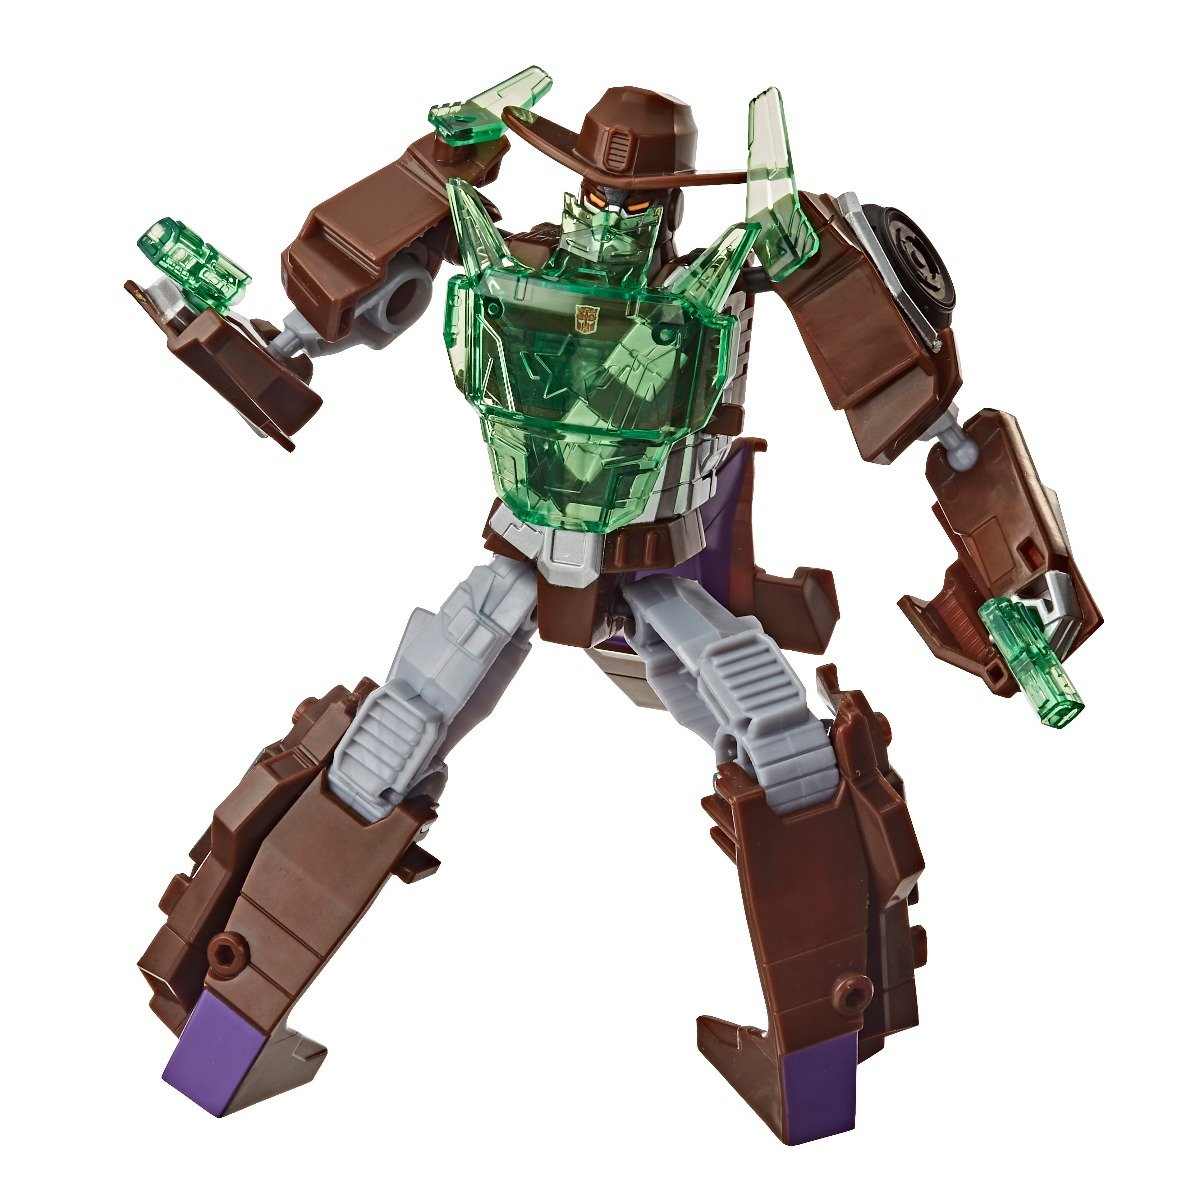 Figurina Transformers Cyberverse Adventures, Battle Call, Wildwheel, E8374